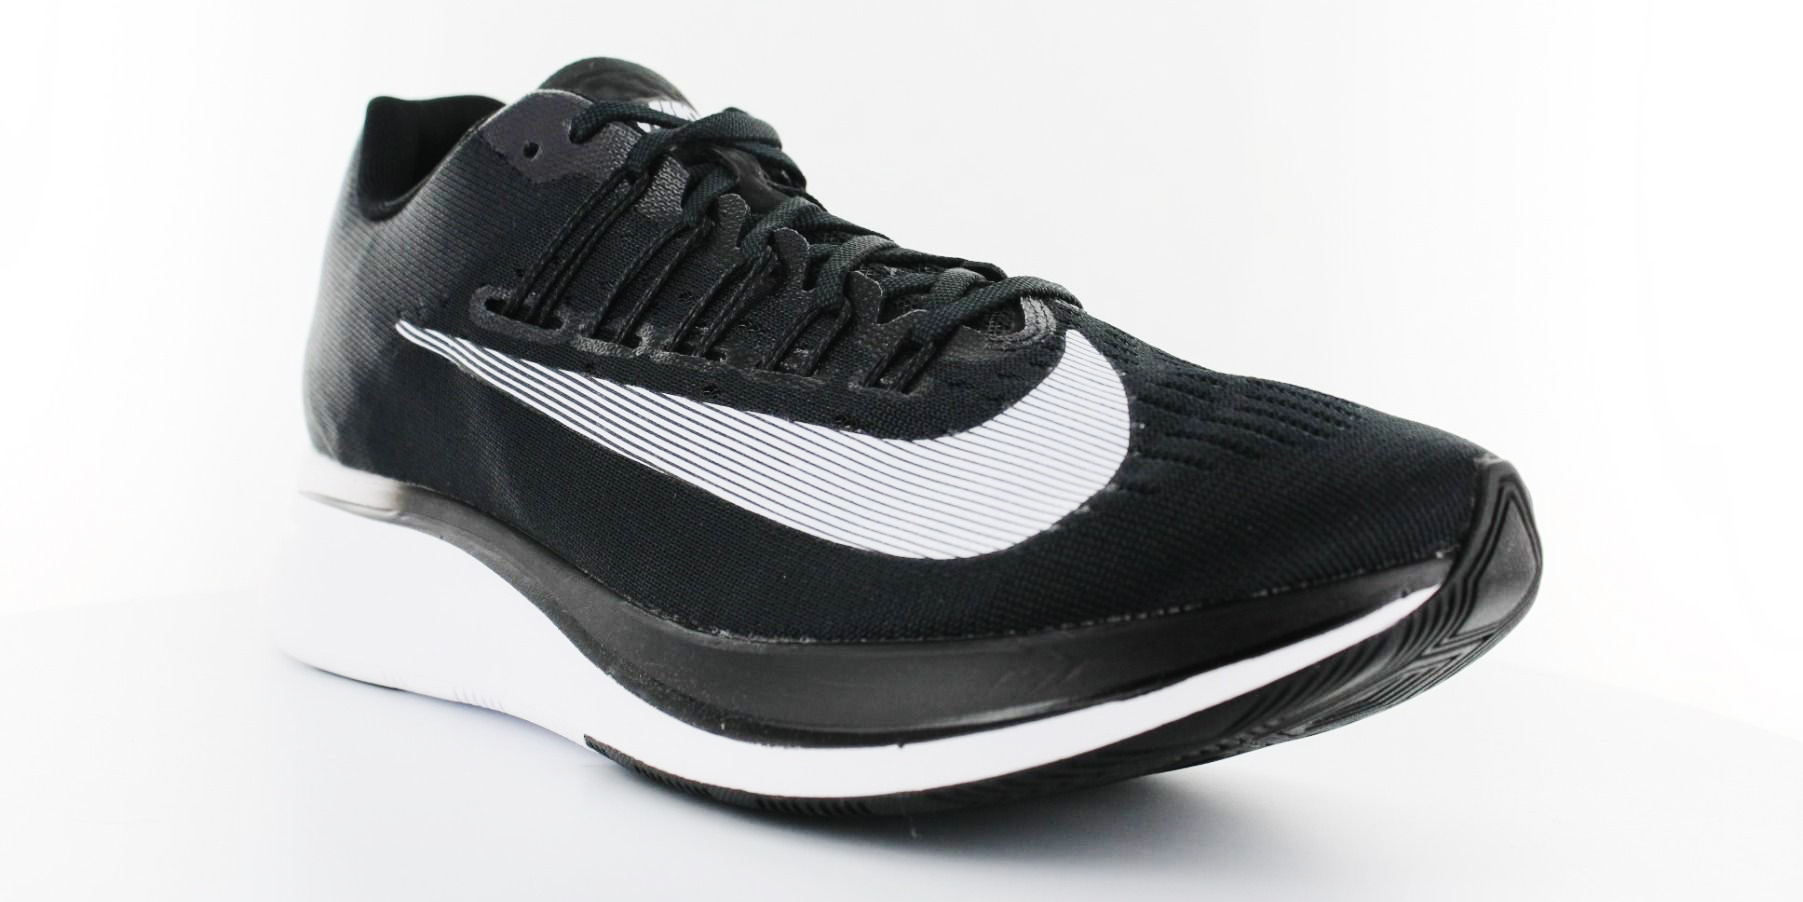 Nike Zoom Fly Review: Fit, Feel & Function | Kintec Shoe Experts